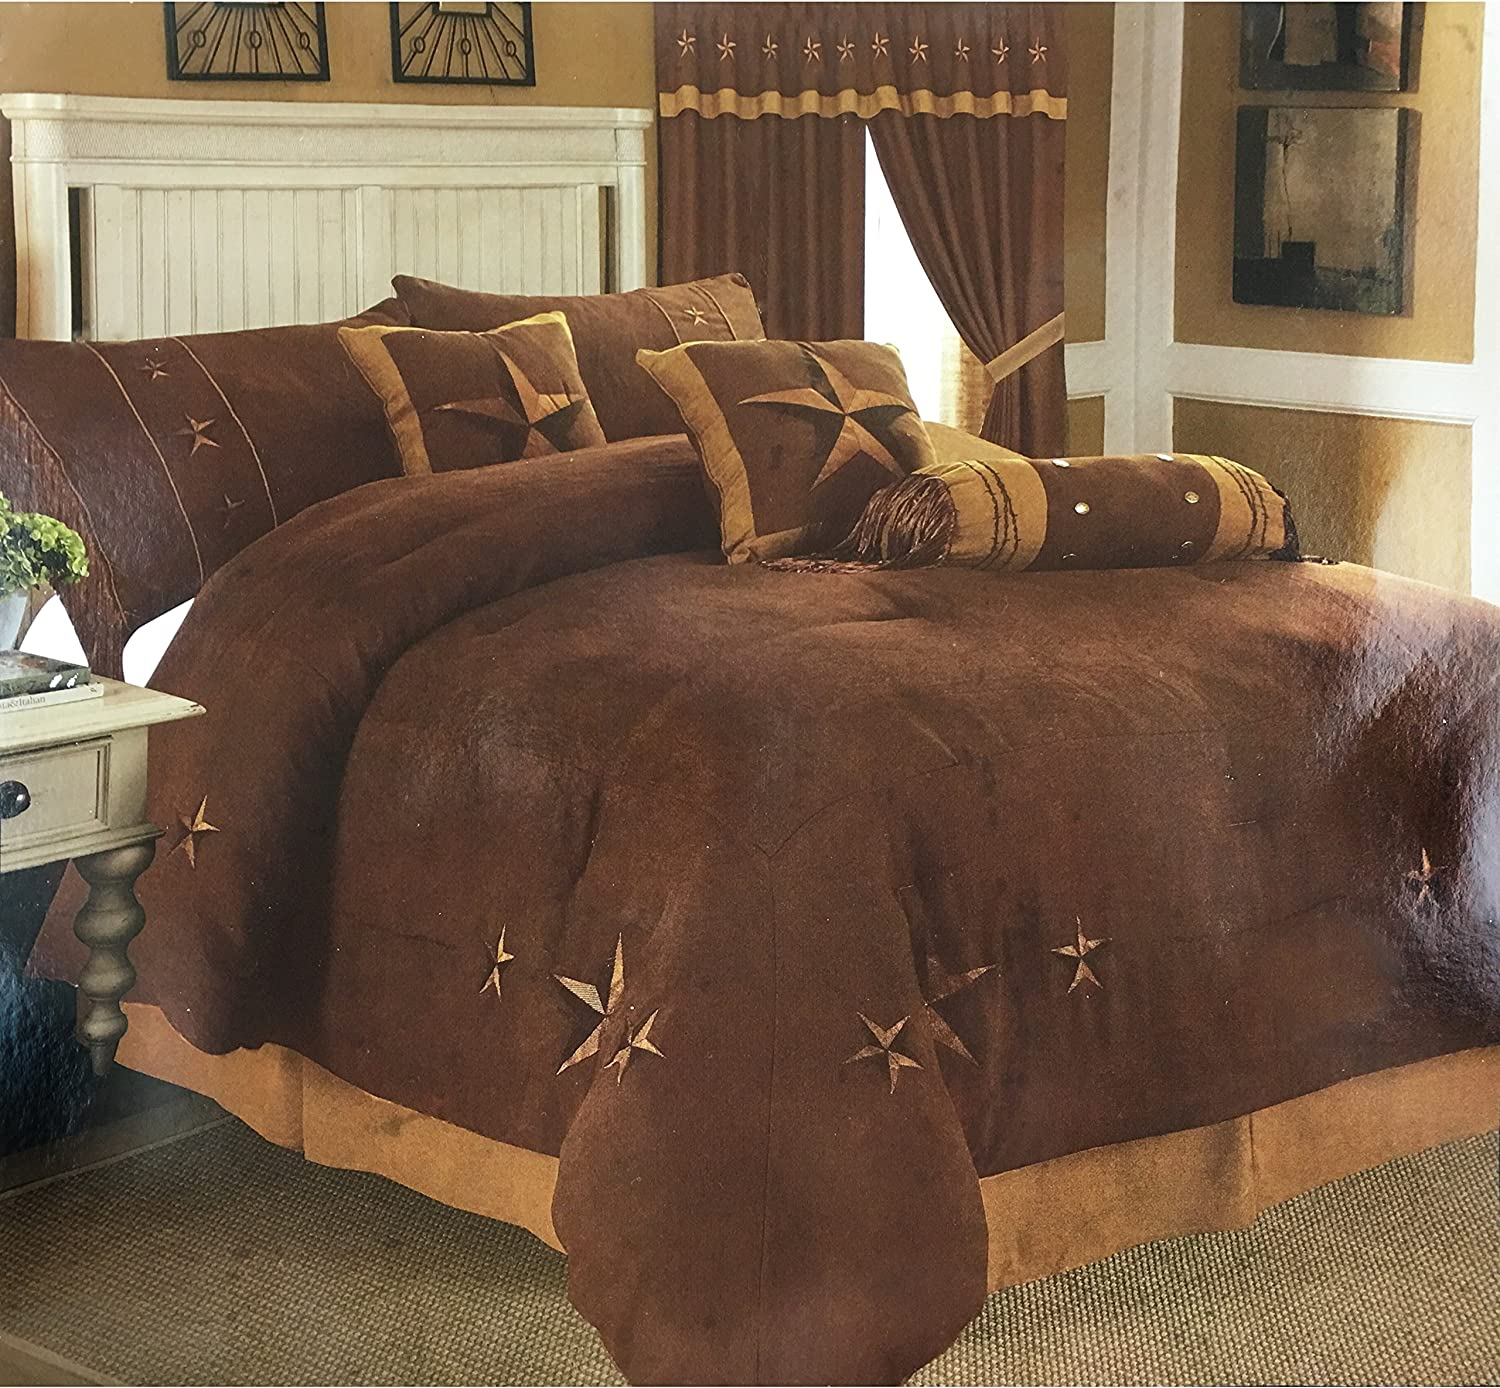 Western Ultra-Cheap Deals Peak Oversize Embroidery Texas Star Comfor Suede Credence